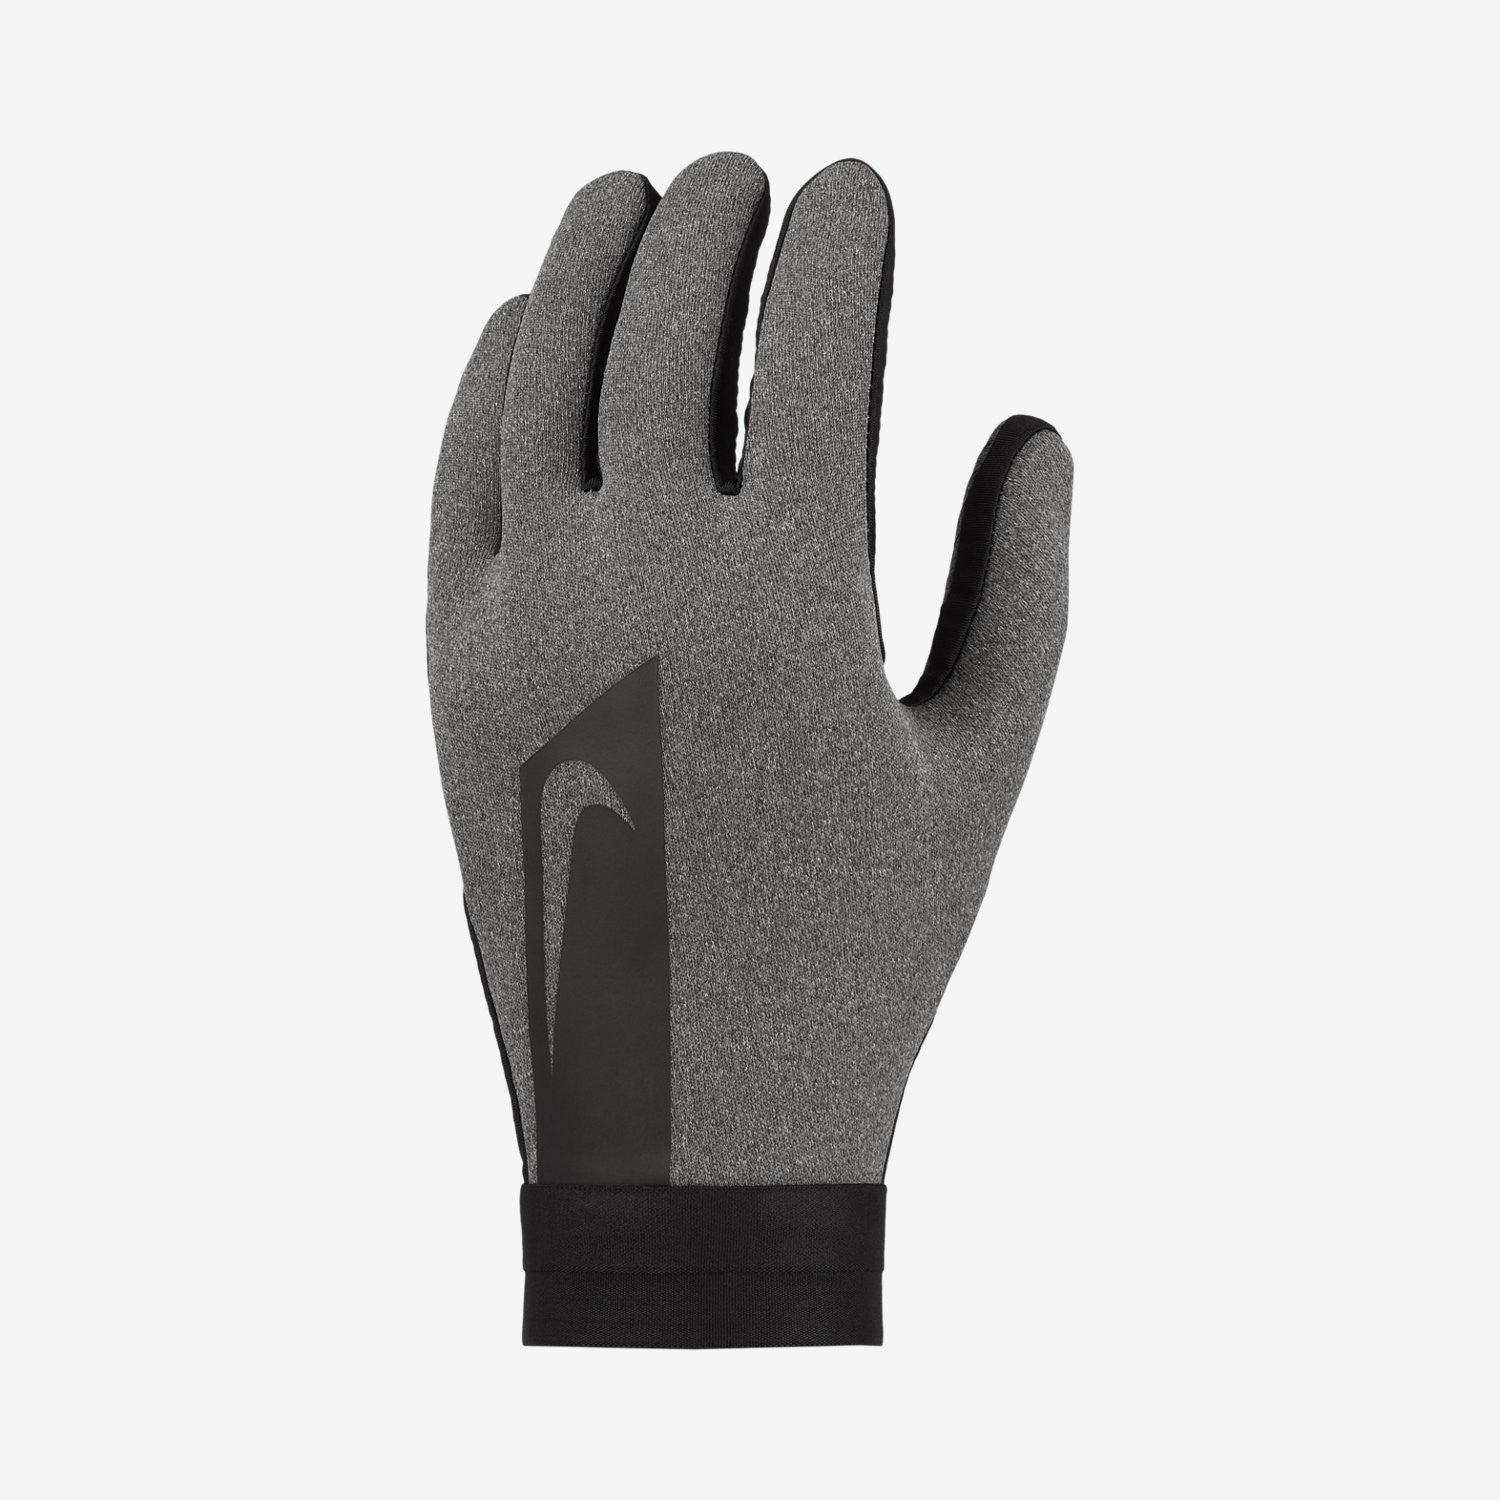 HyperWarm Academy Gloves - Charcoal Heather/Black